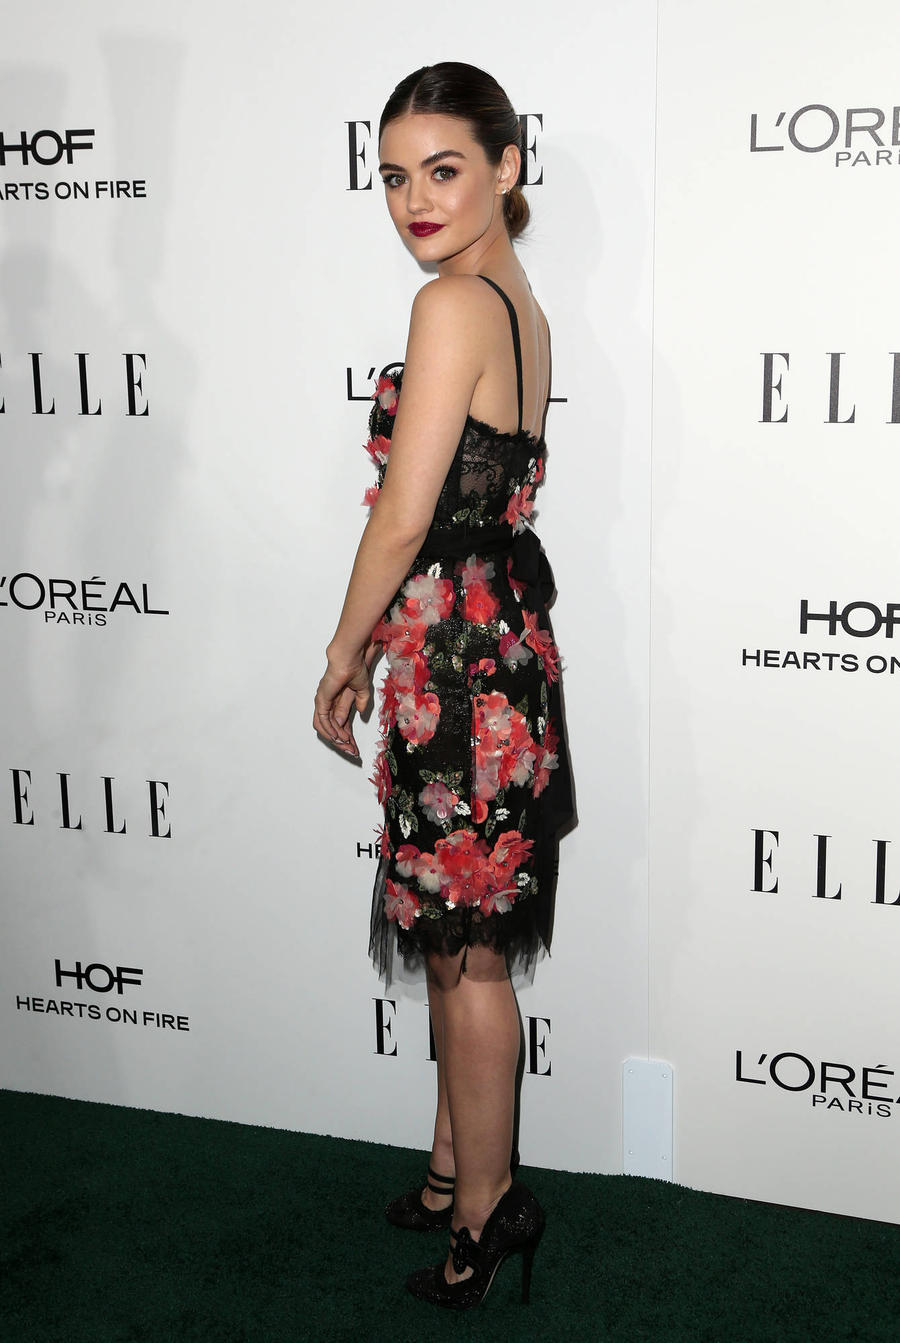 Lucy Hale Breaks Silence After Topless Pictures Leak